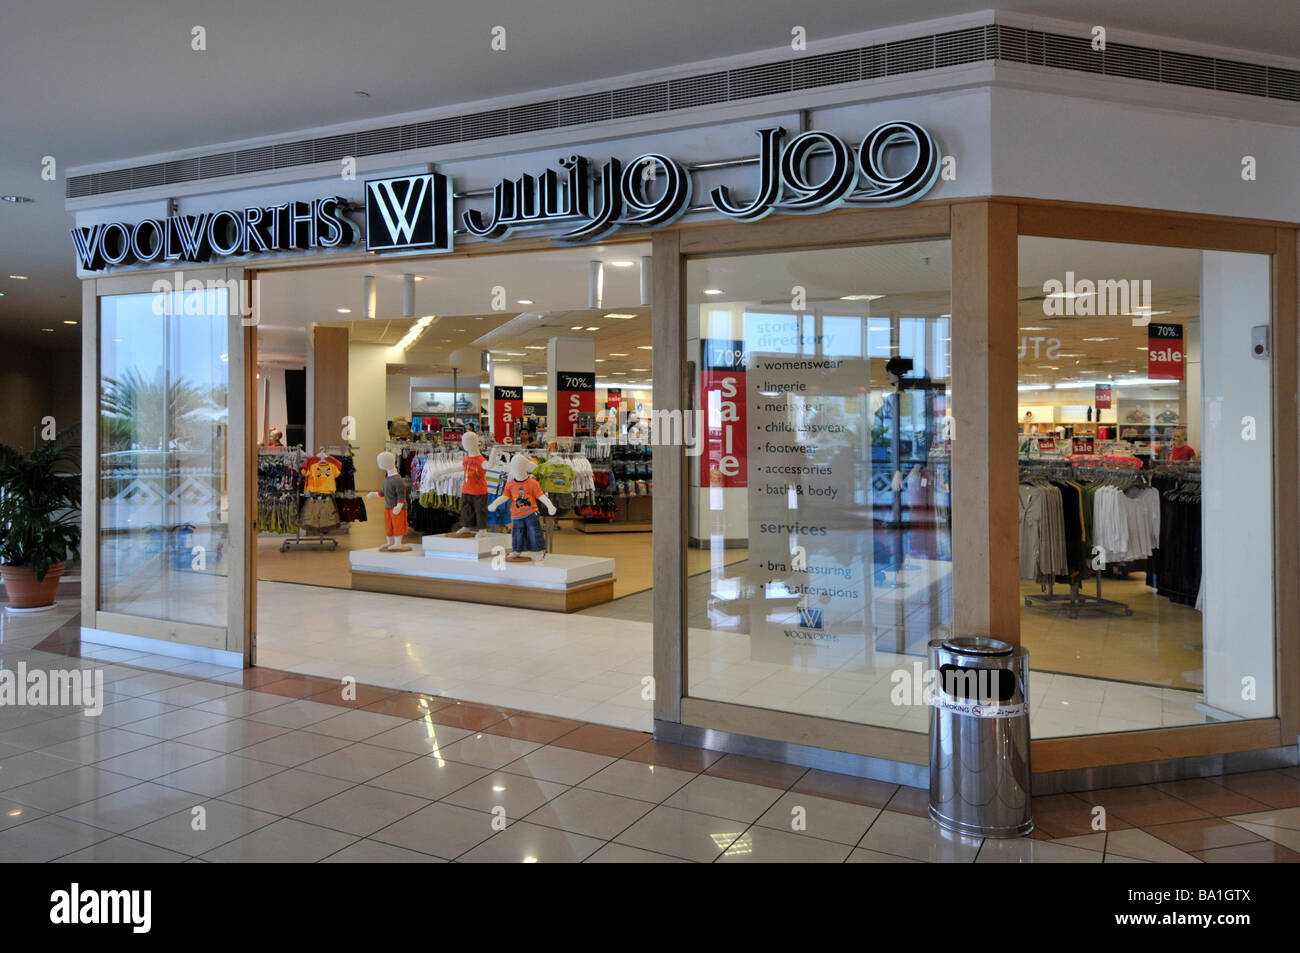 abu dhabi marina shopping mall a woolworths holdings south african stock photo royalty free. Black Bedroom Furniture Sets. Home Design Ideas